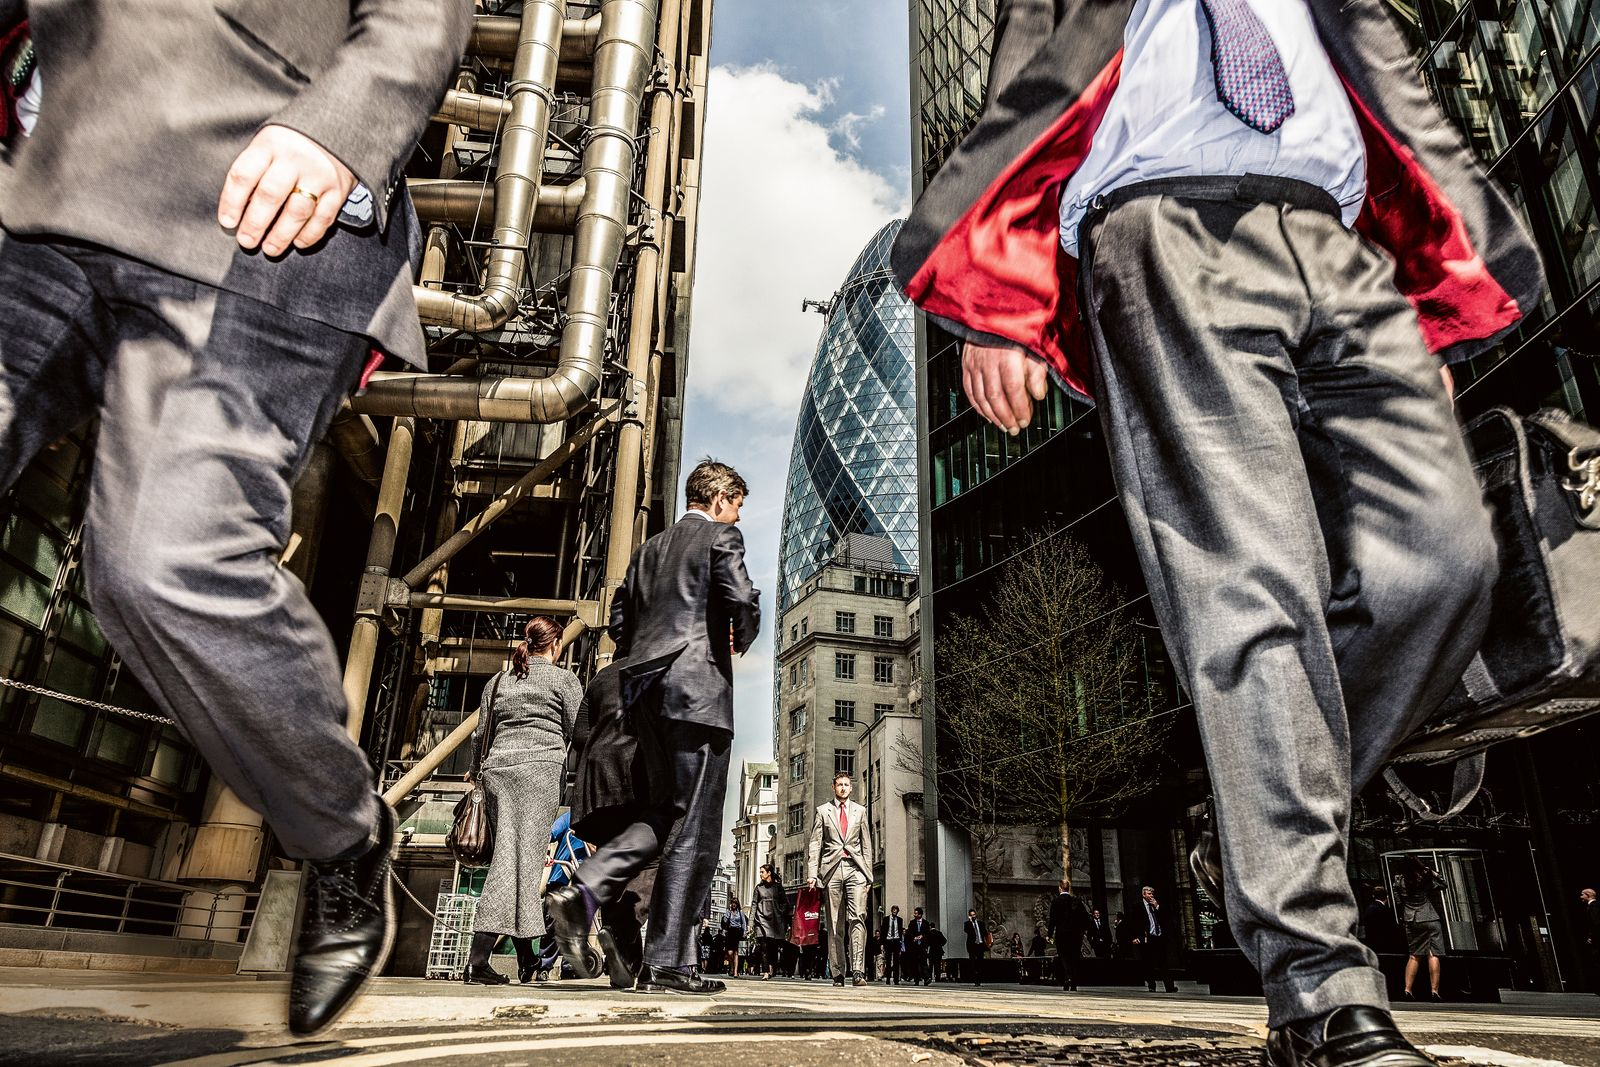 Men In Suits in The Financial Square Mile In London